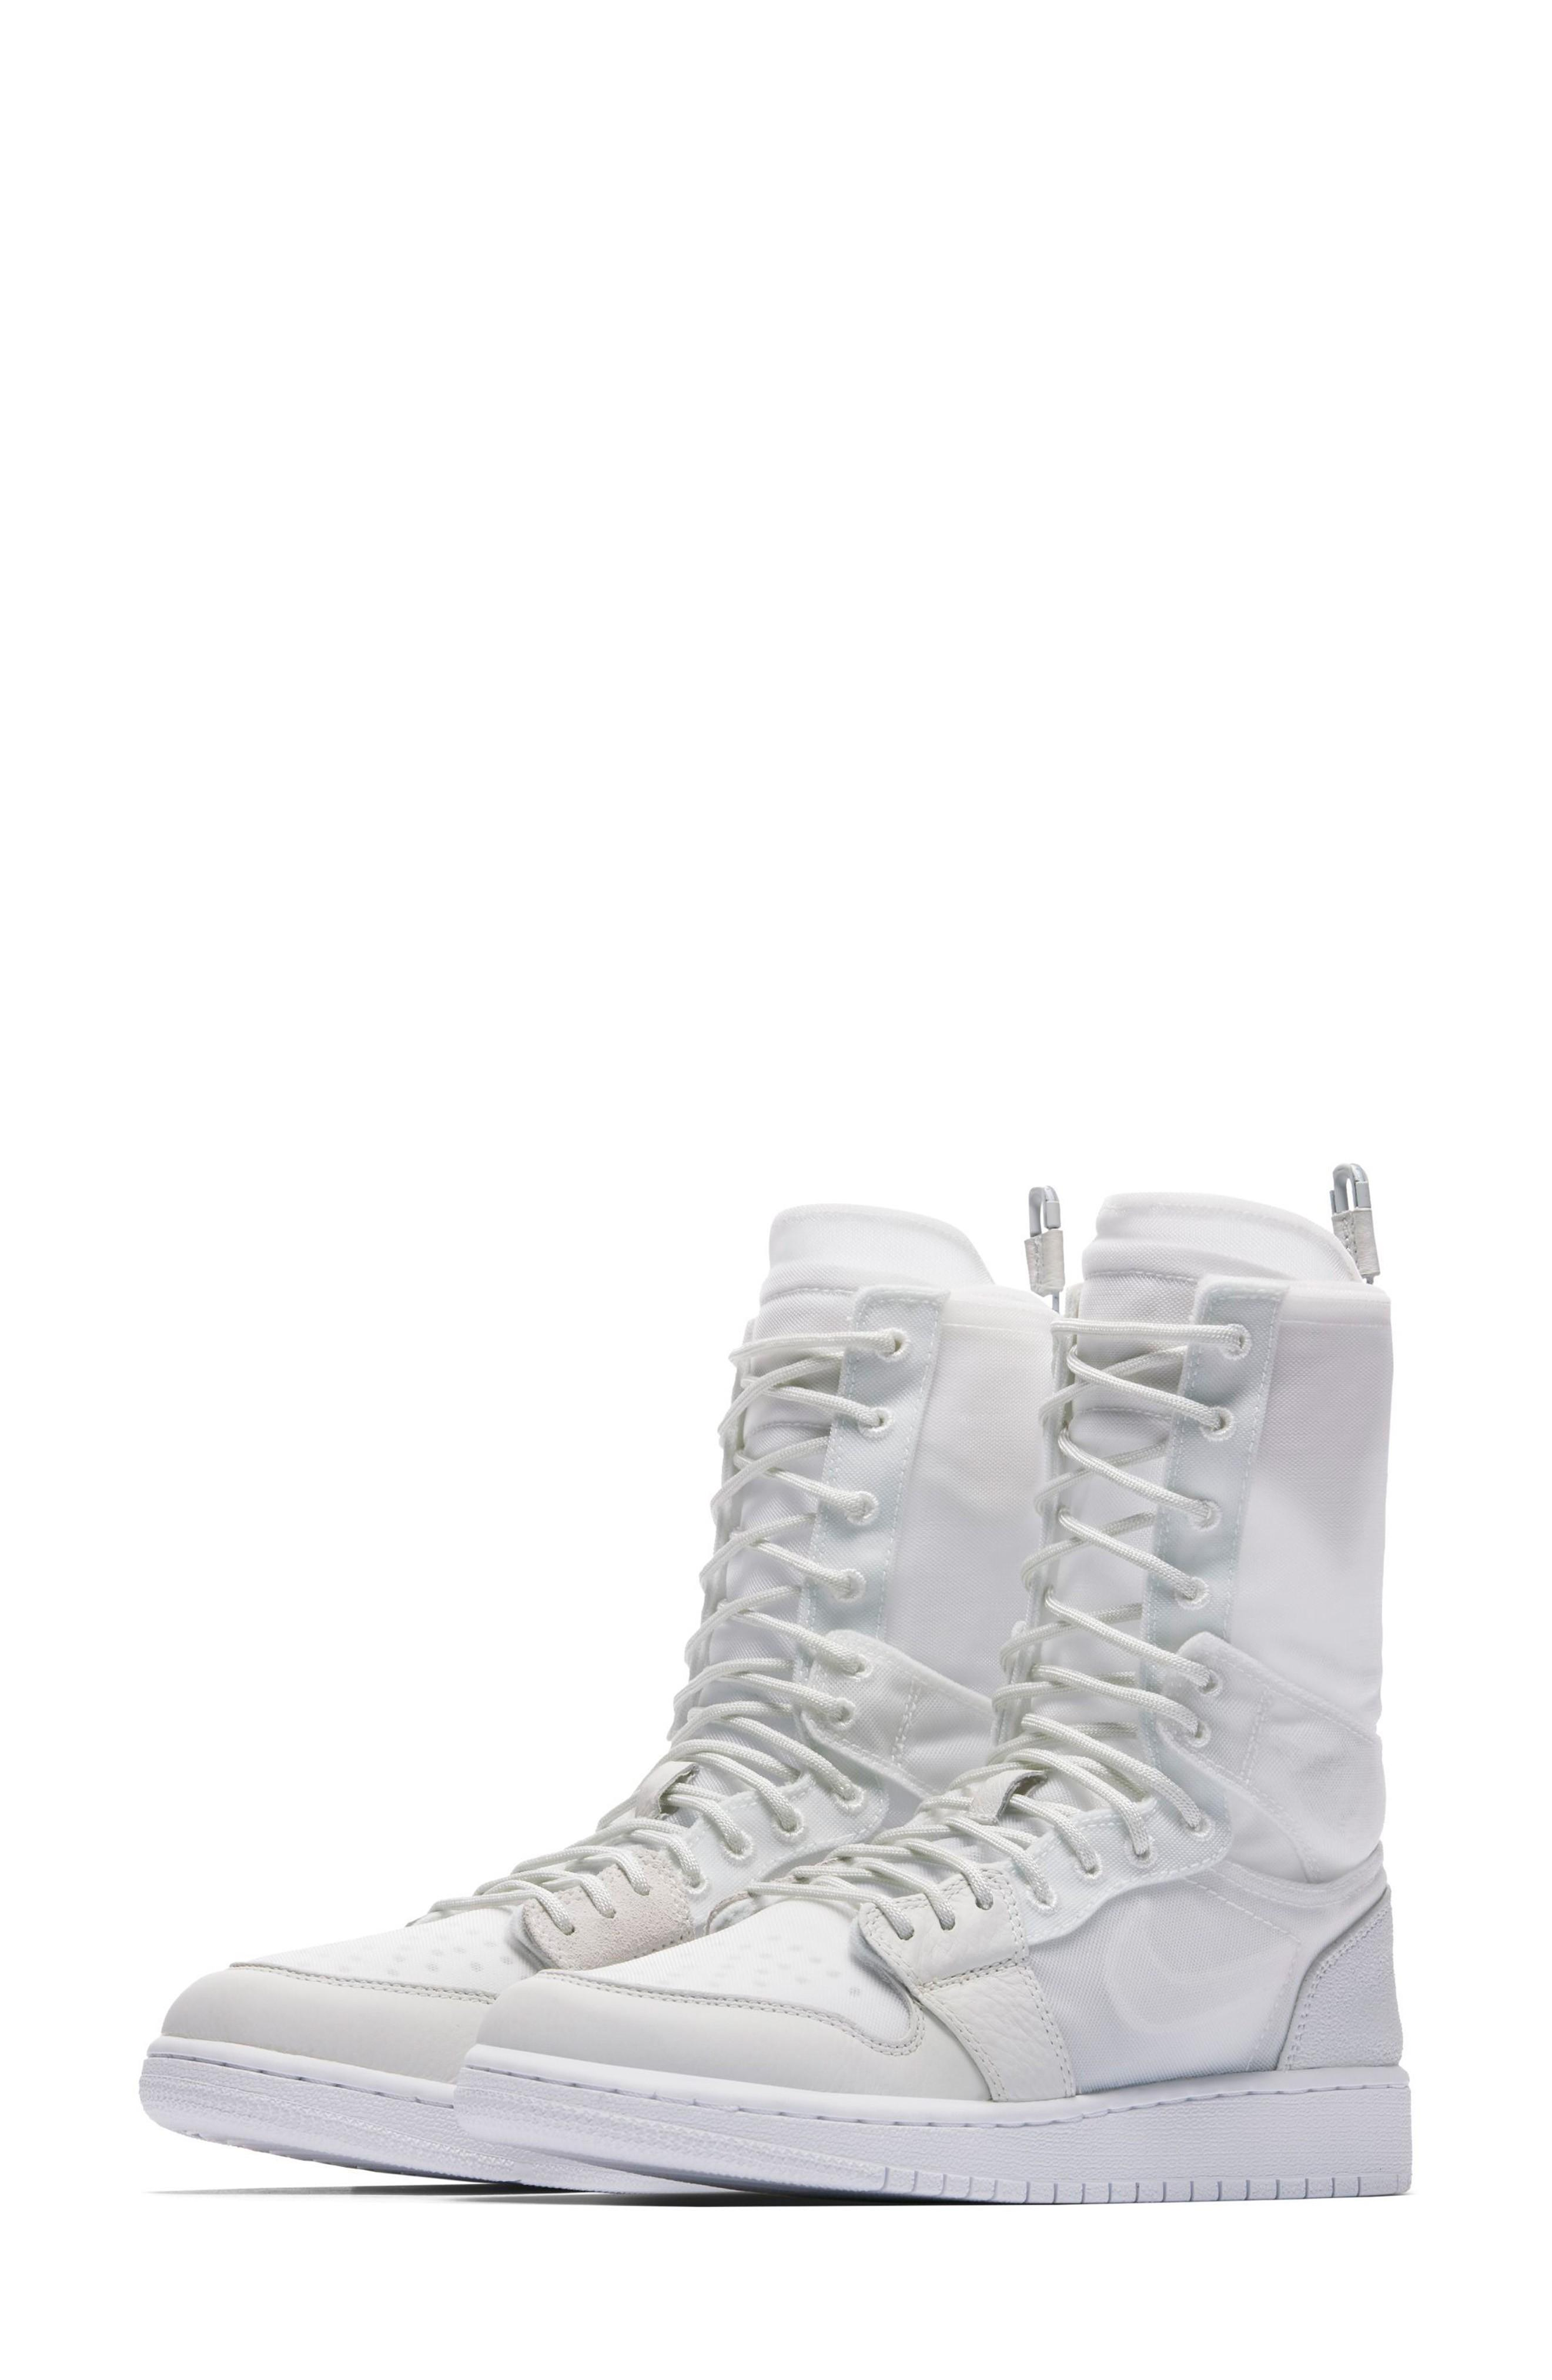 best service d52cf 3aaa0 Nike Air Jordan 1 Explorer Xx Convertible High Top Sneaker In Off White   Off White